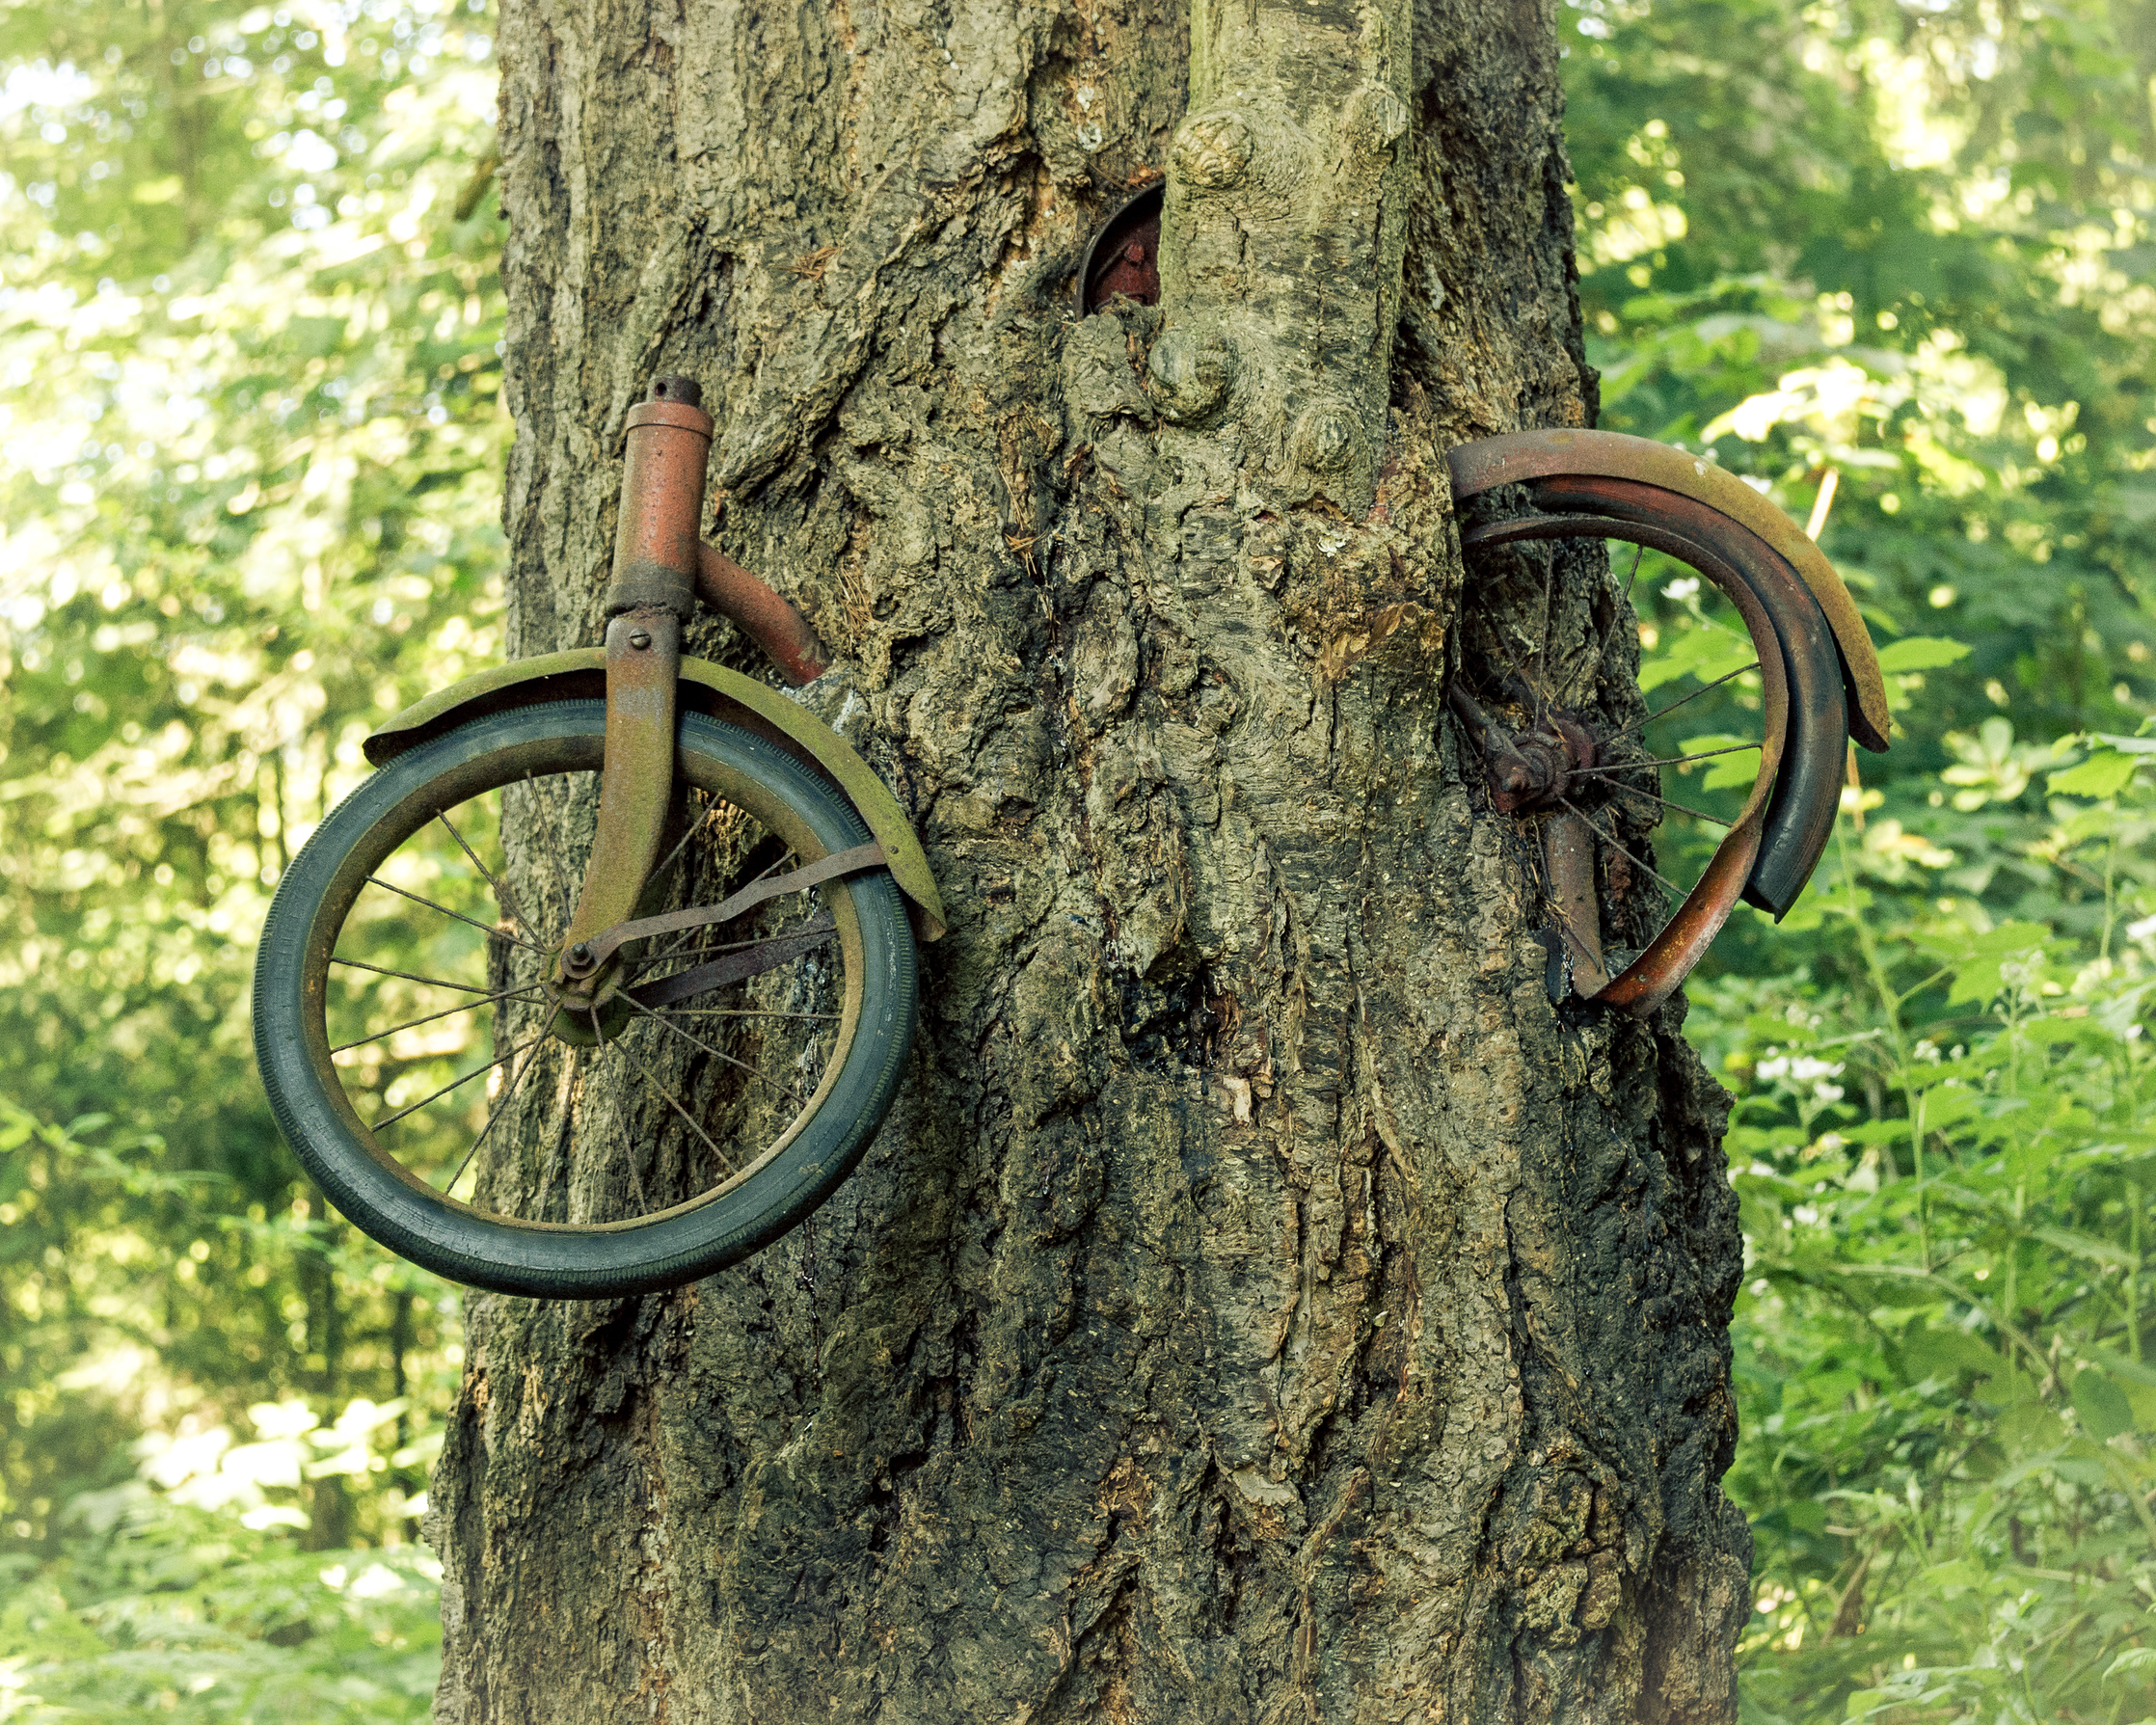 Vashon's famous bike in the tree. We know how it got there.  (Photo Credit: Steve Tosterud)